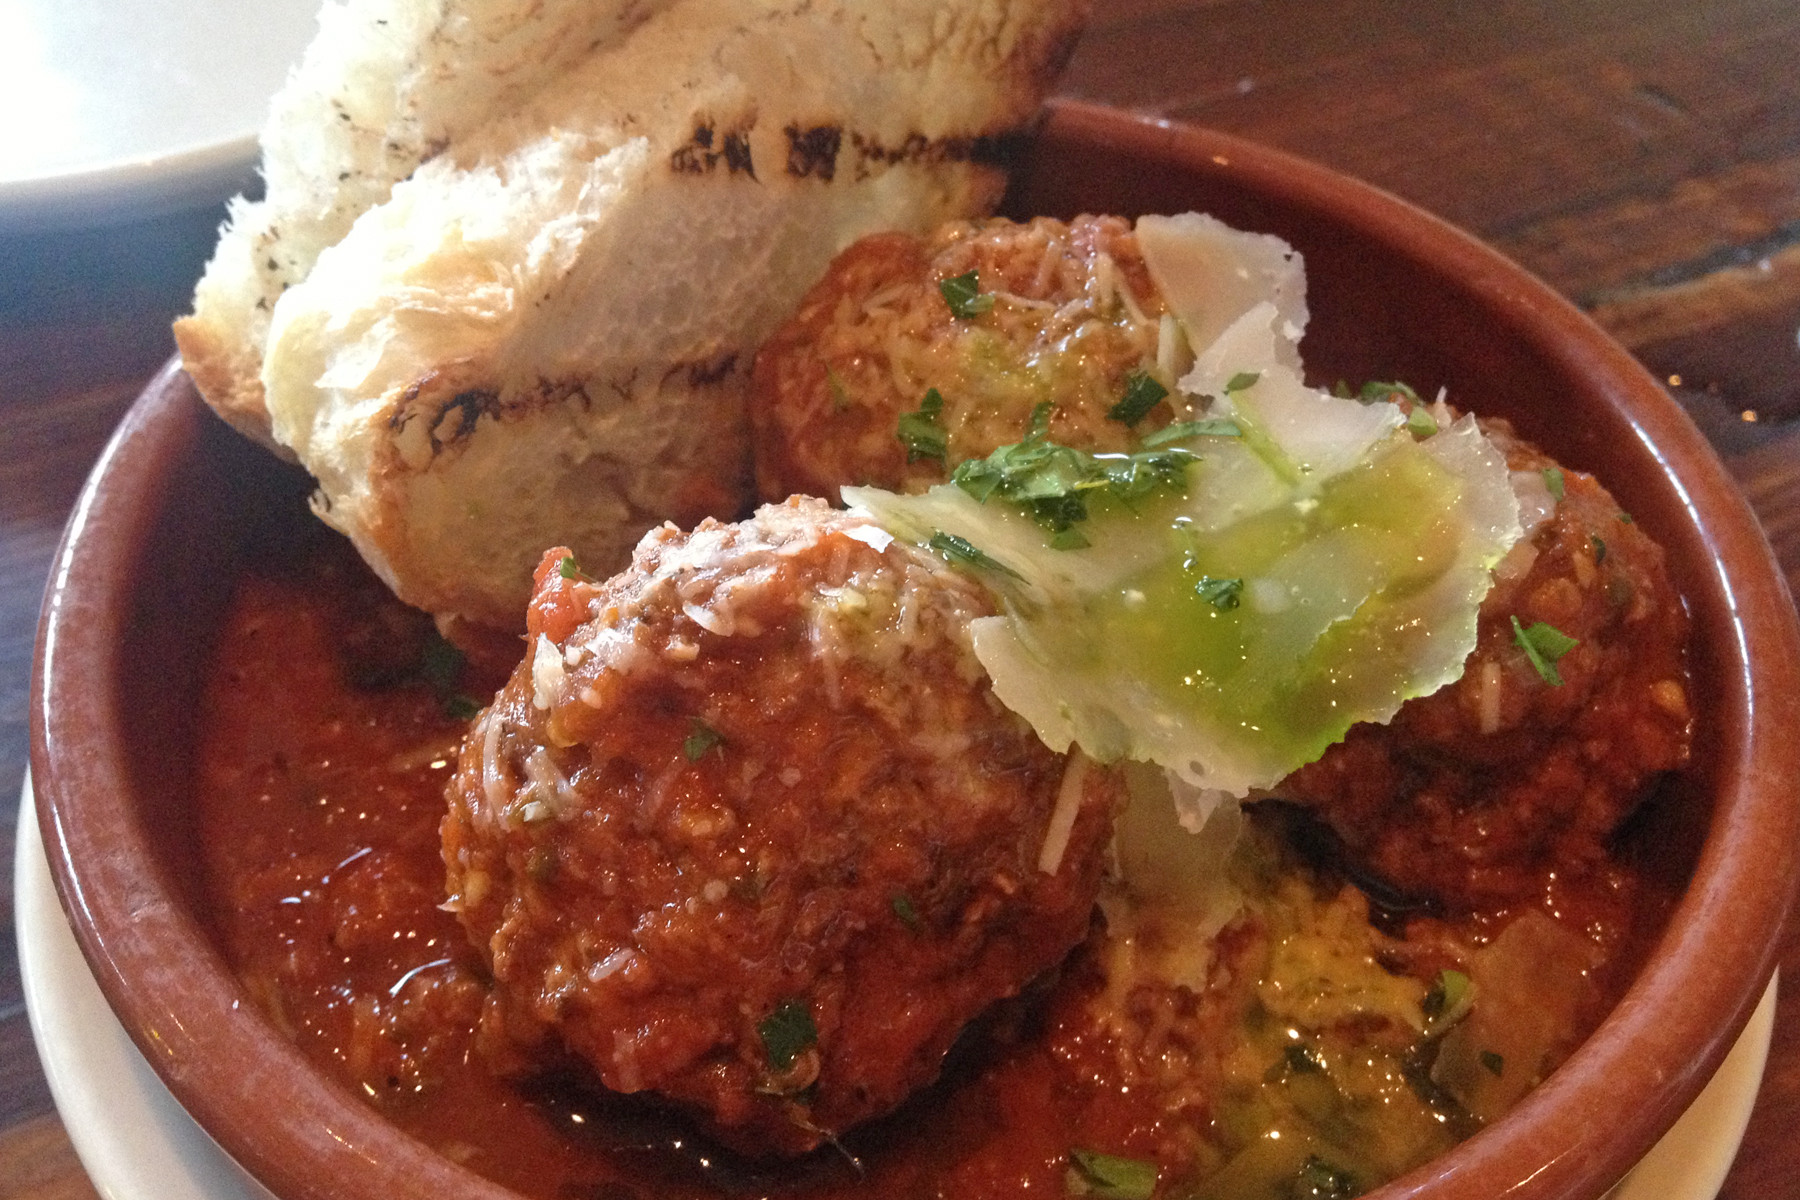 Meatballs with grilled peasant bread